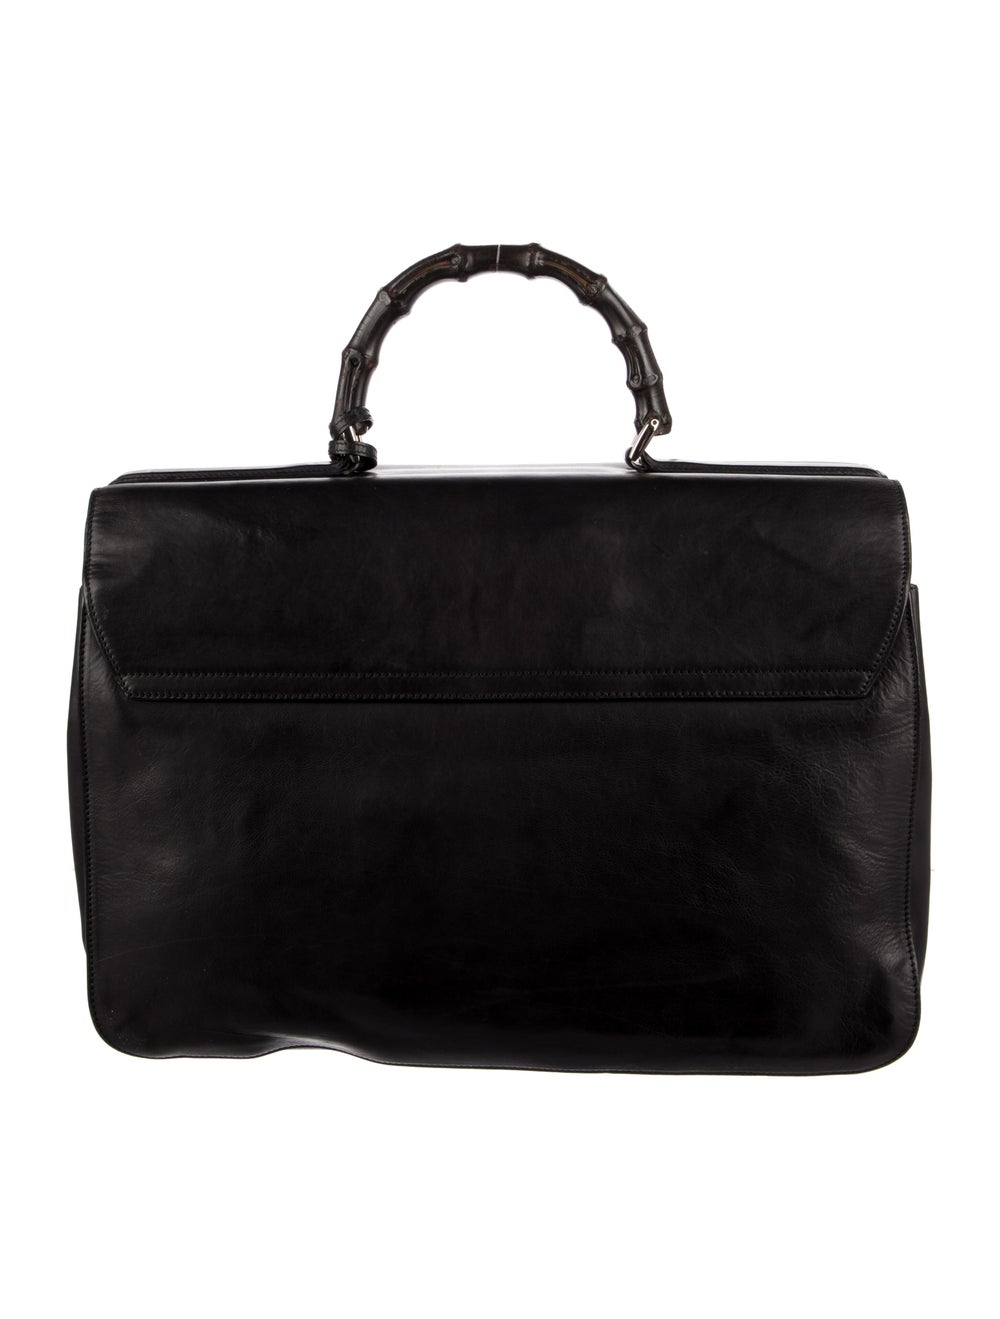 Gucci Bamboo Handle Soft Briefcase Black - image 4